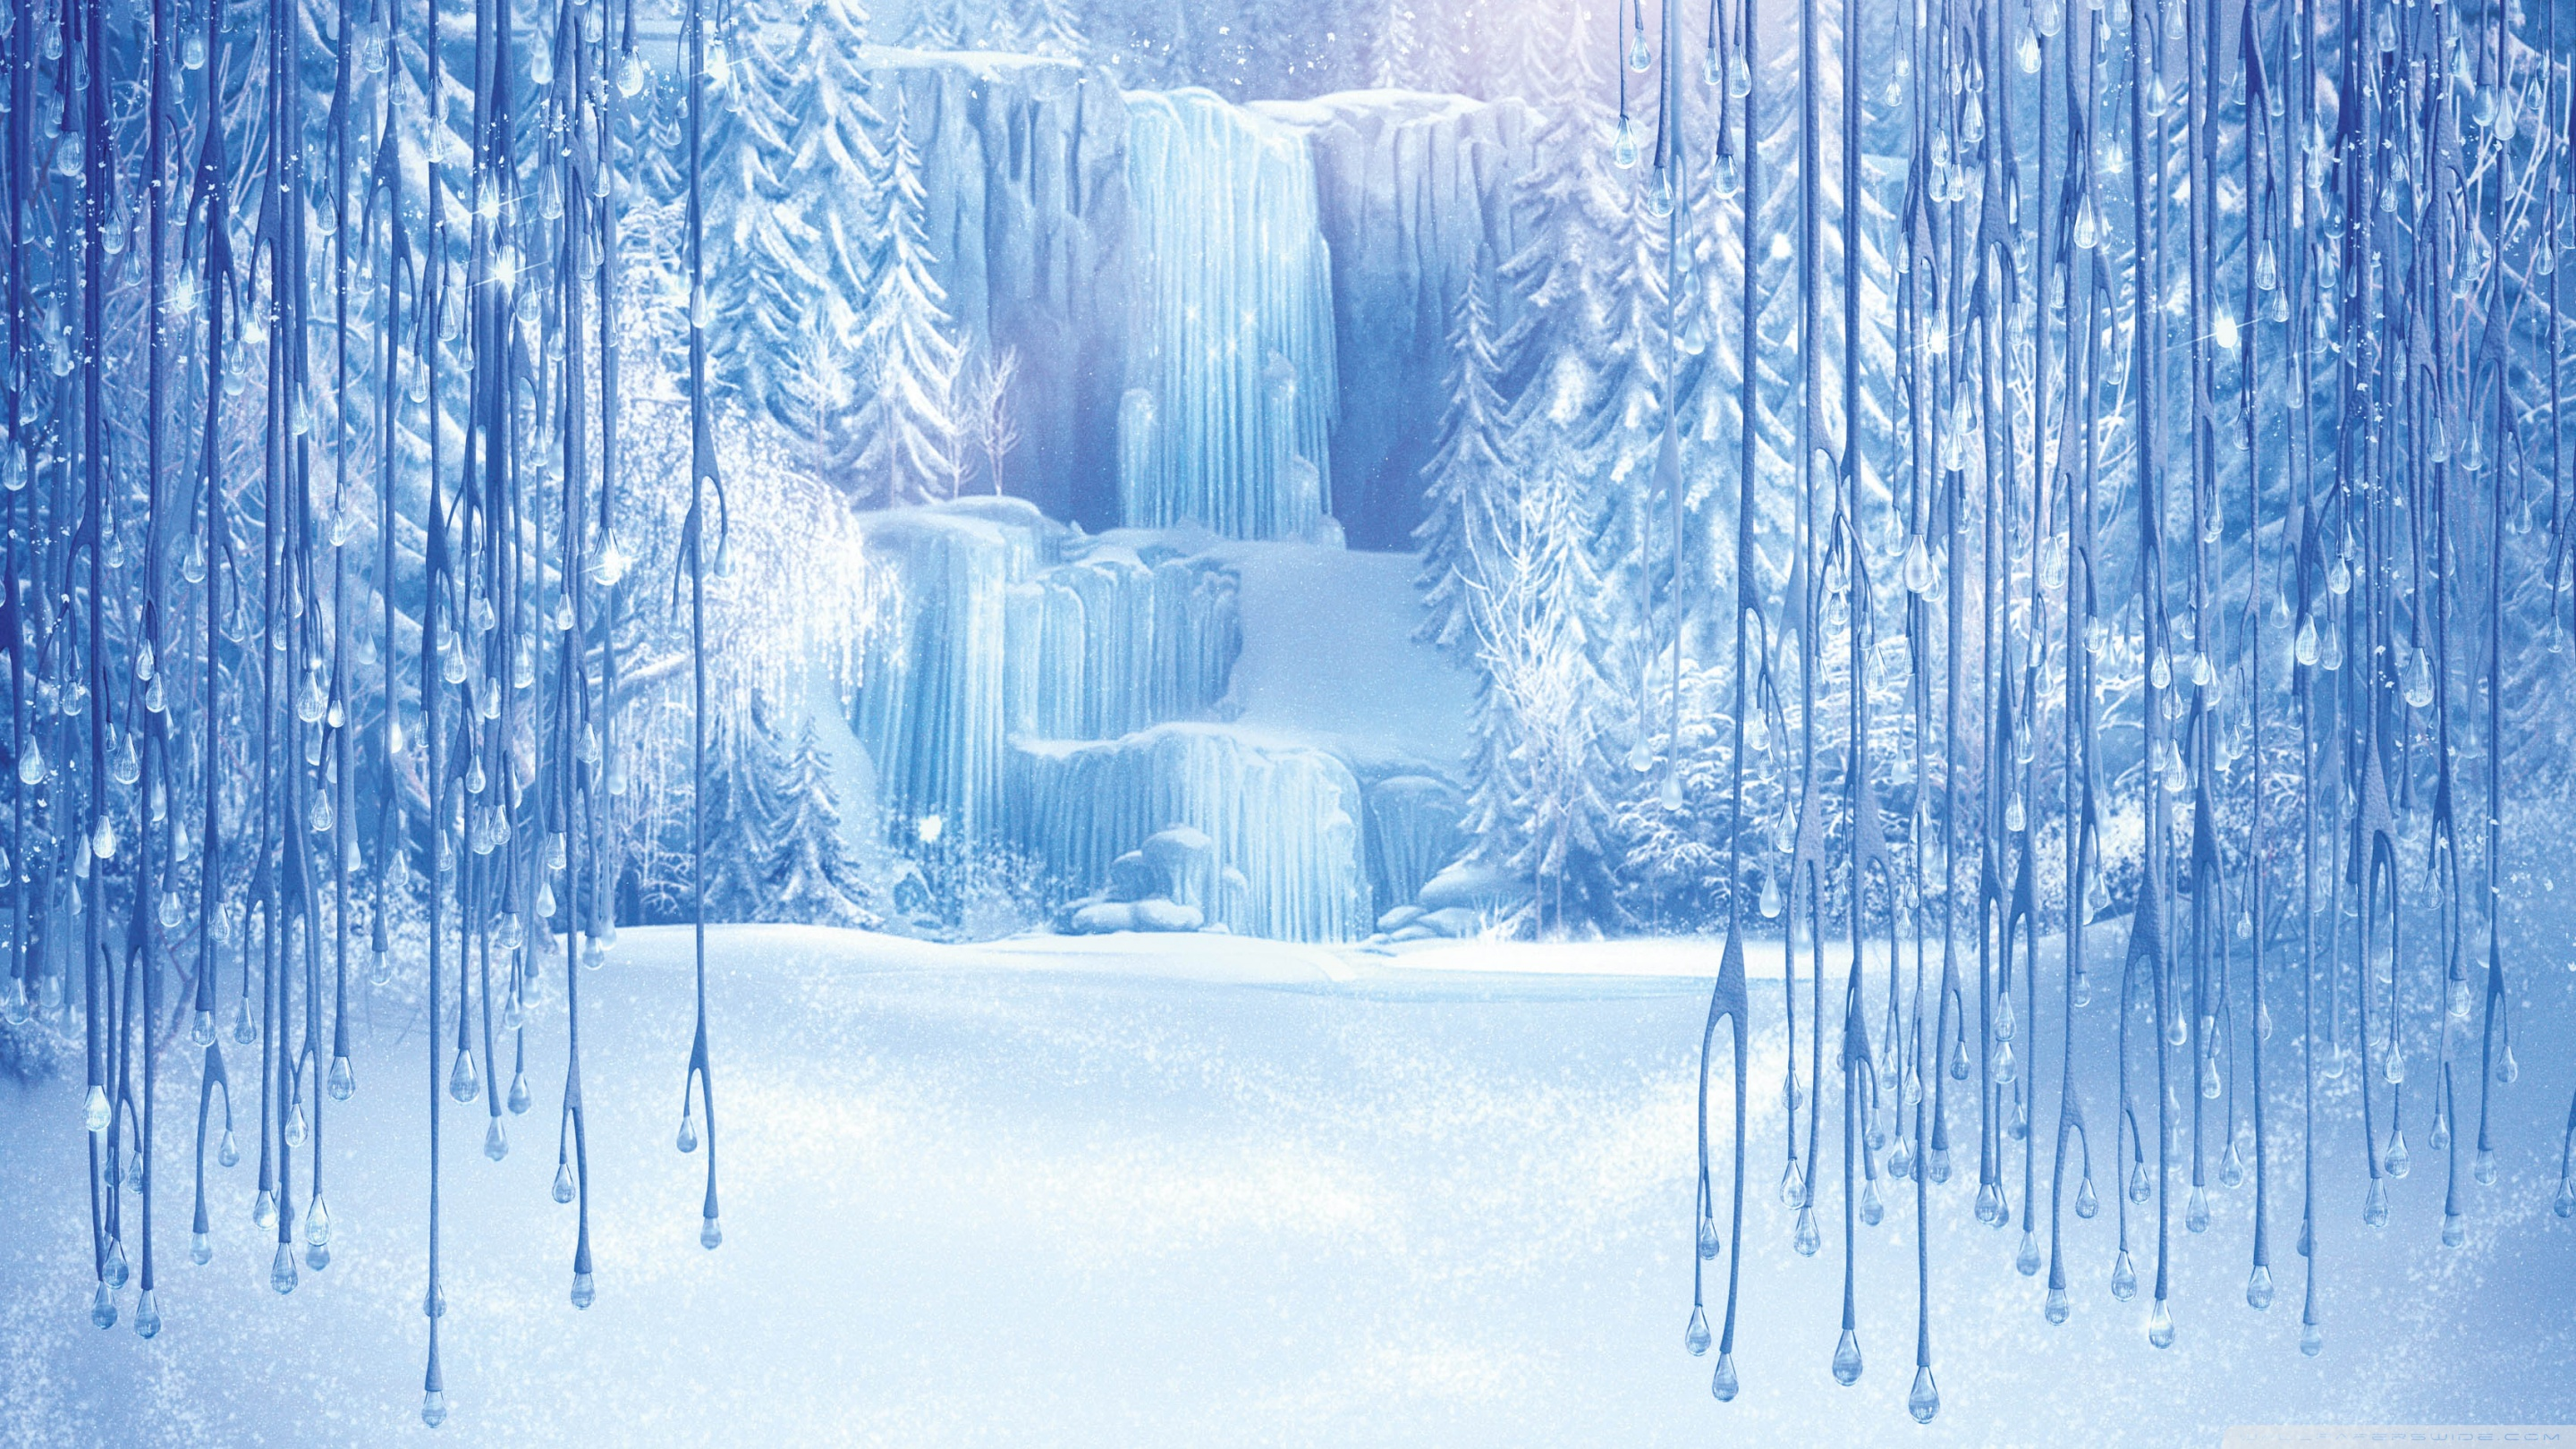 Frozen hd wallpaper achtergrond 2880x1620 id 521490 wallpaper abyss - Beautiful frozen computer wallpaper ...